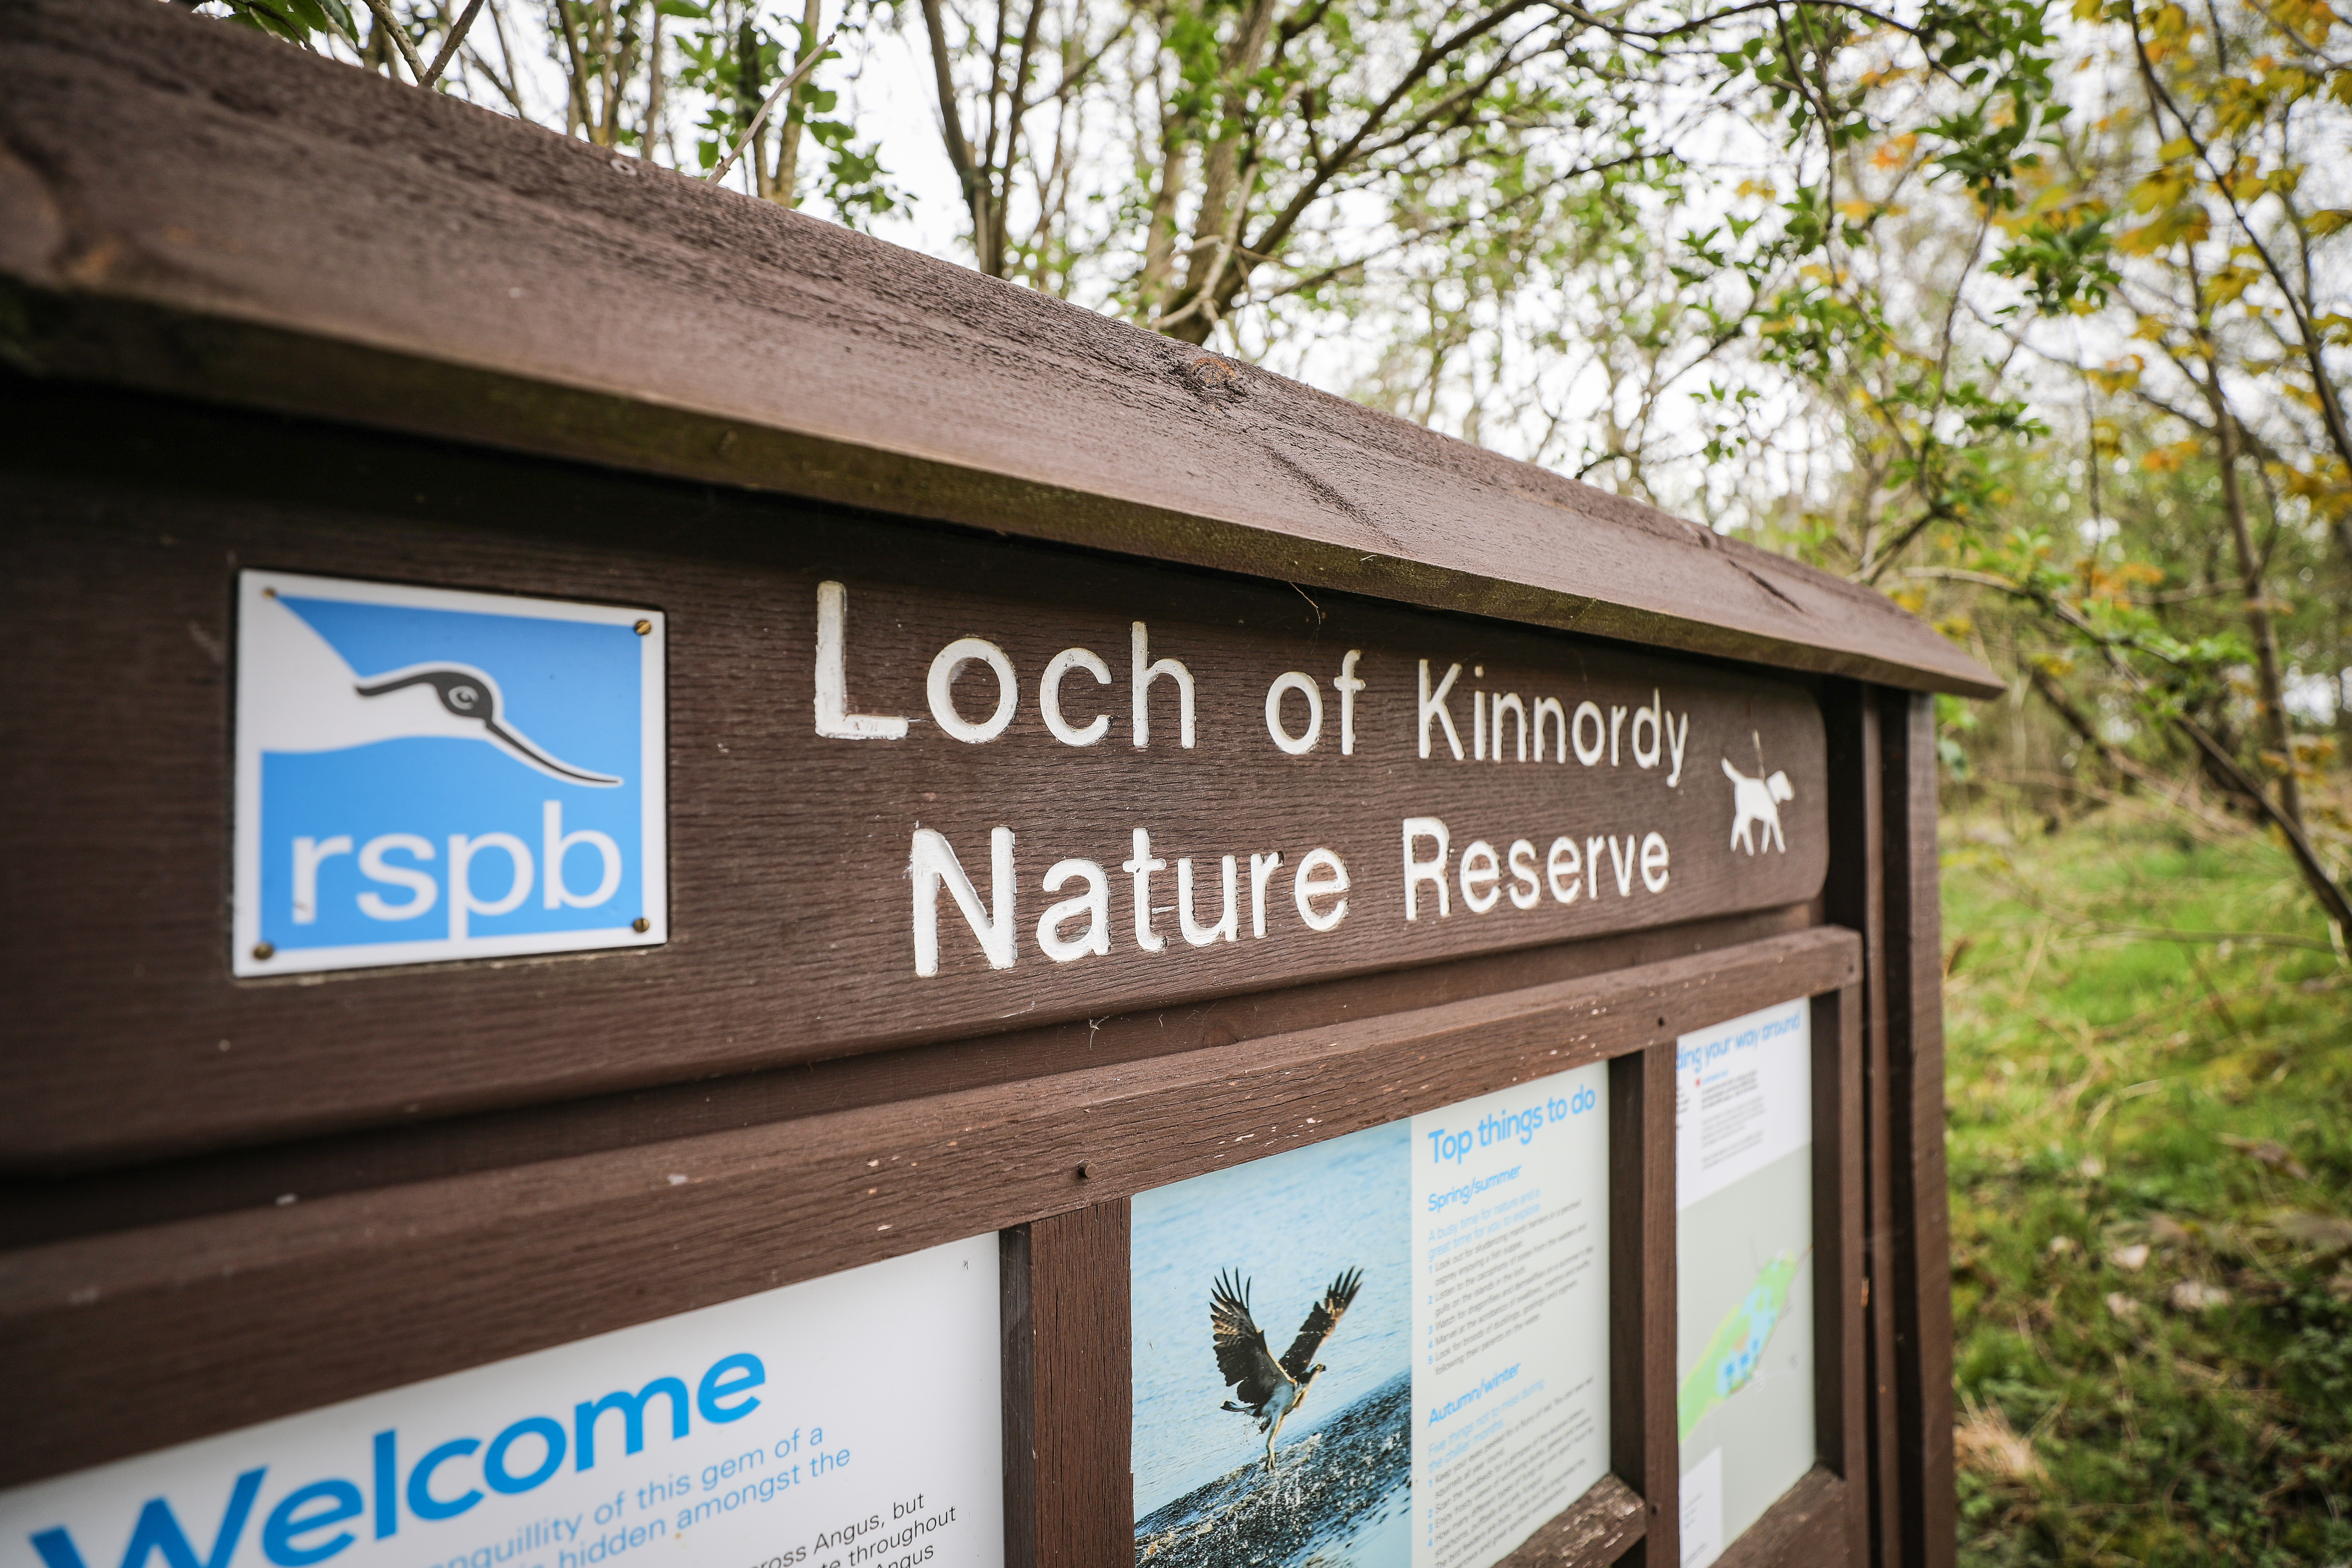 Loch of Kinnordy Nature Reserve, where Steven Donaldson's charred remains were found.